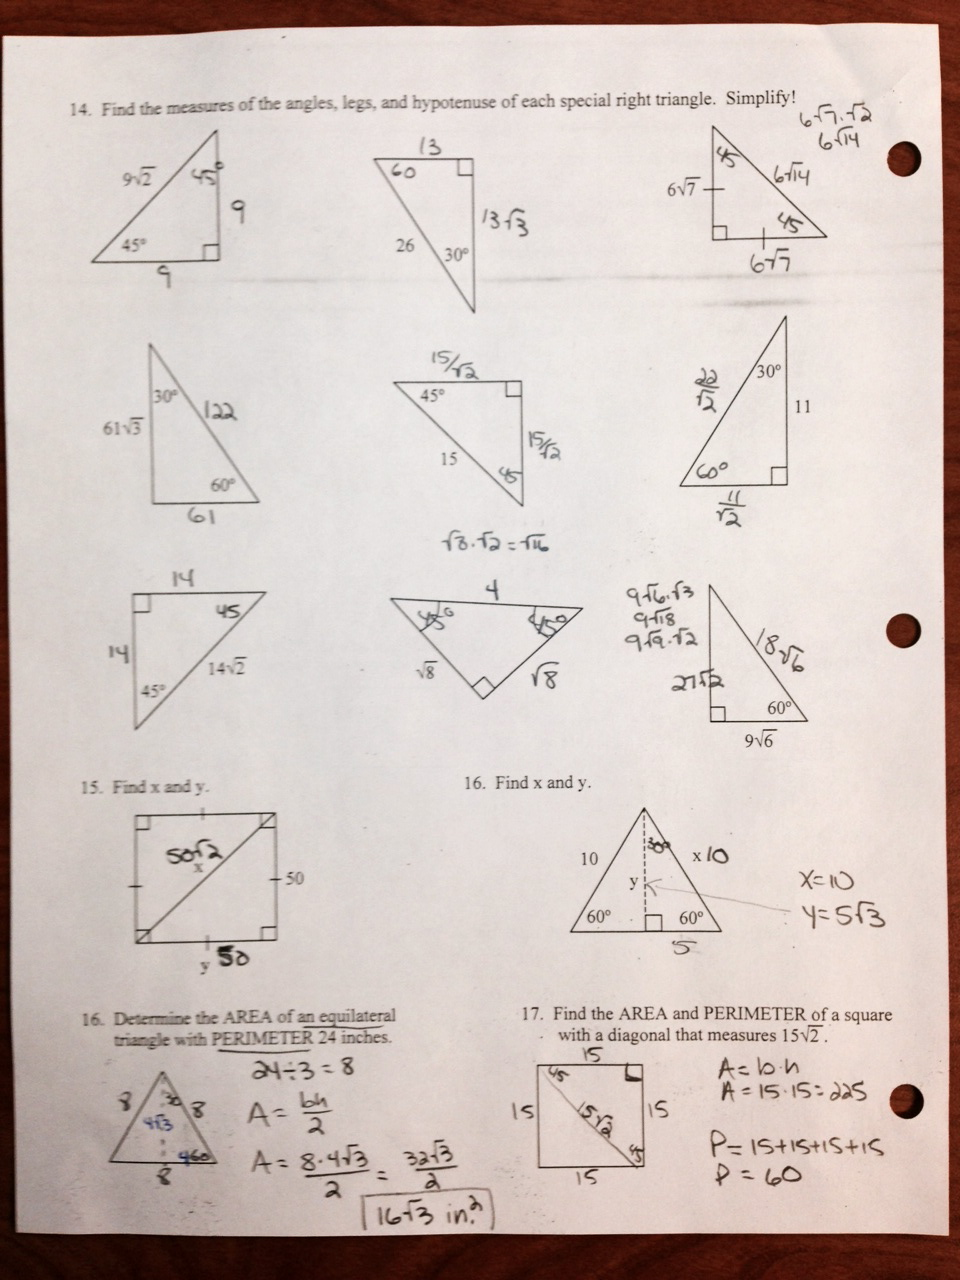 Worksheet Geometry Worksheet Answers geometry 10 mrs burgess mill creek middle school ch 9 review answers